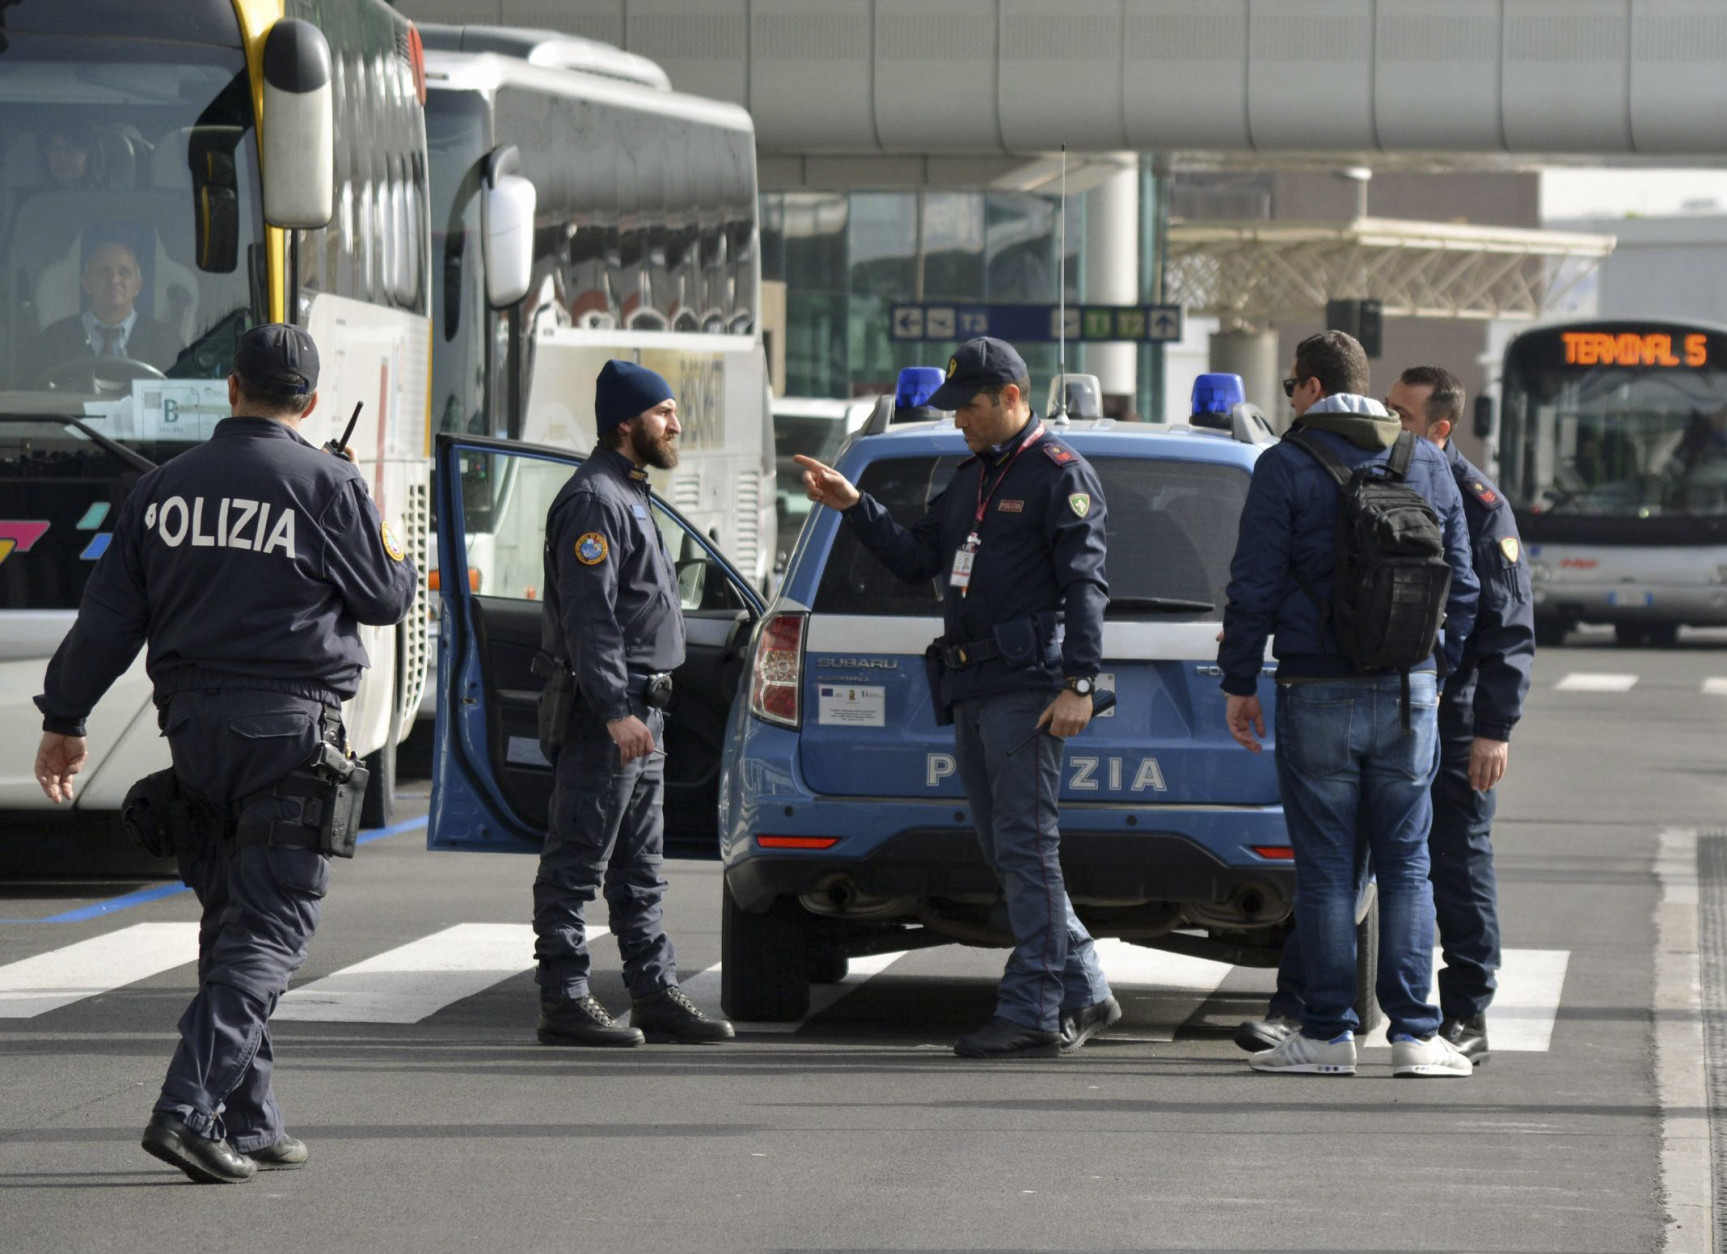 Police officers perform security checks at Fiumicino airport, near Rome, Tuesday, March 22, 2016. The Italian Interior Ministry announced heightened security measures at major Italian airports following explosions at the Brussels airport and the subway system earlier Tuesday. (Telenews/ANSA via AP) ITALY OUT